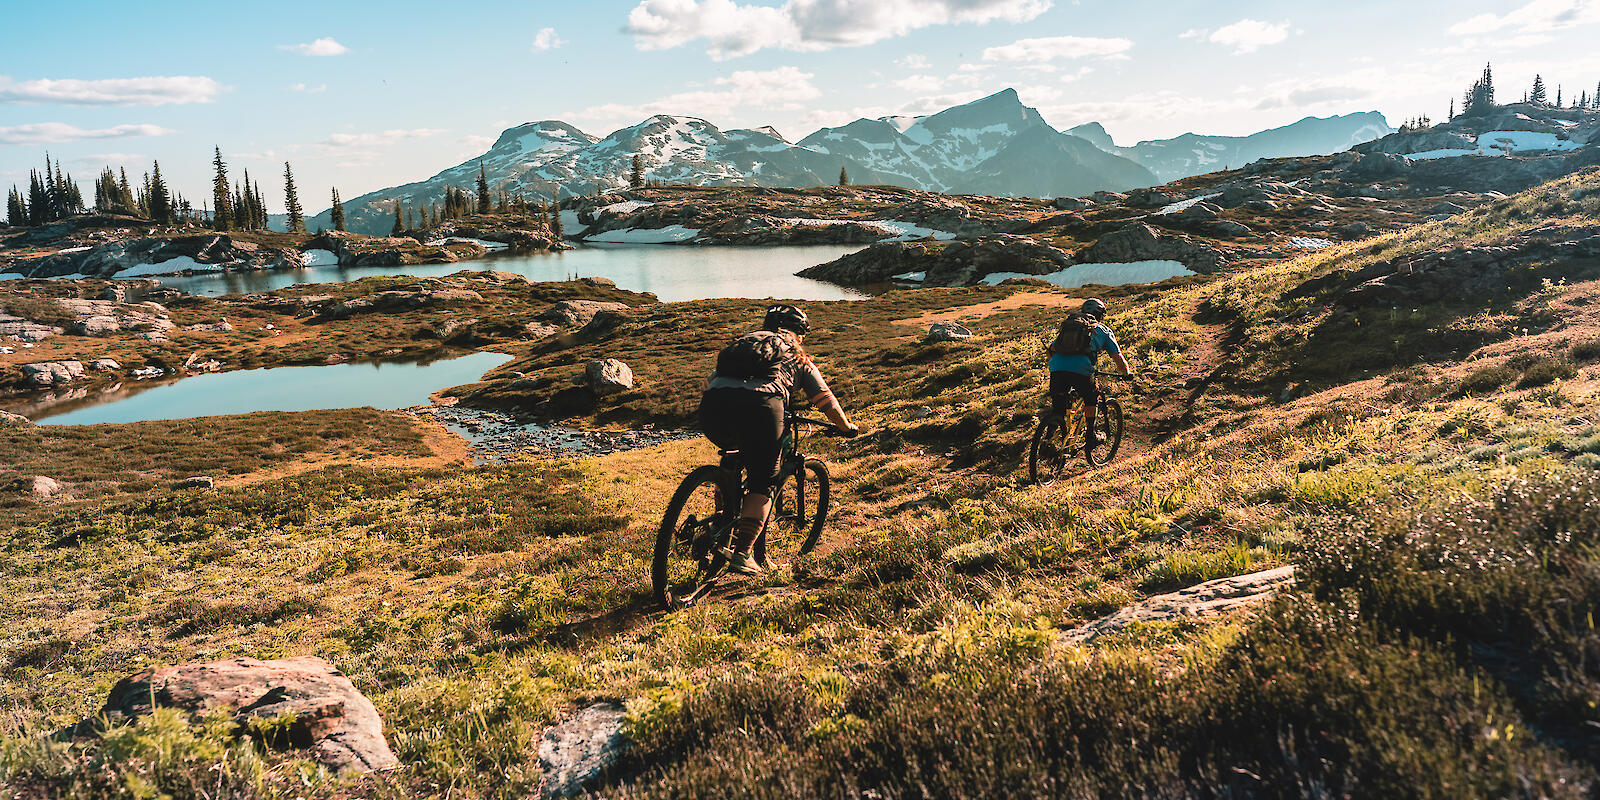 2 mountain bikers riding in alpine terrain at sol mountain lodge